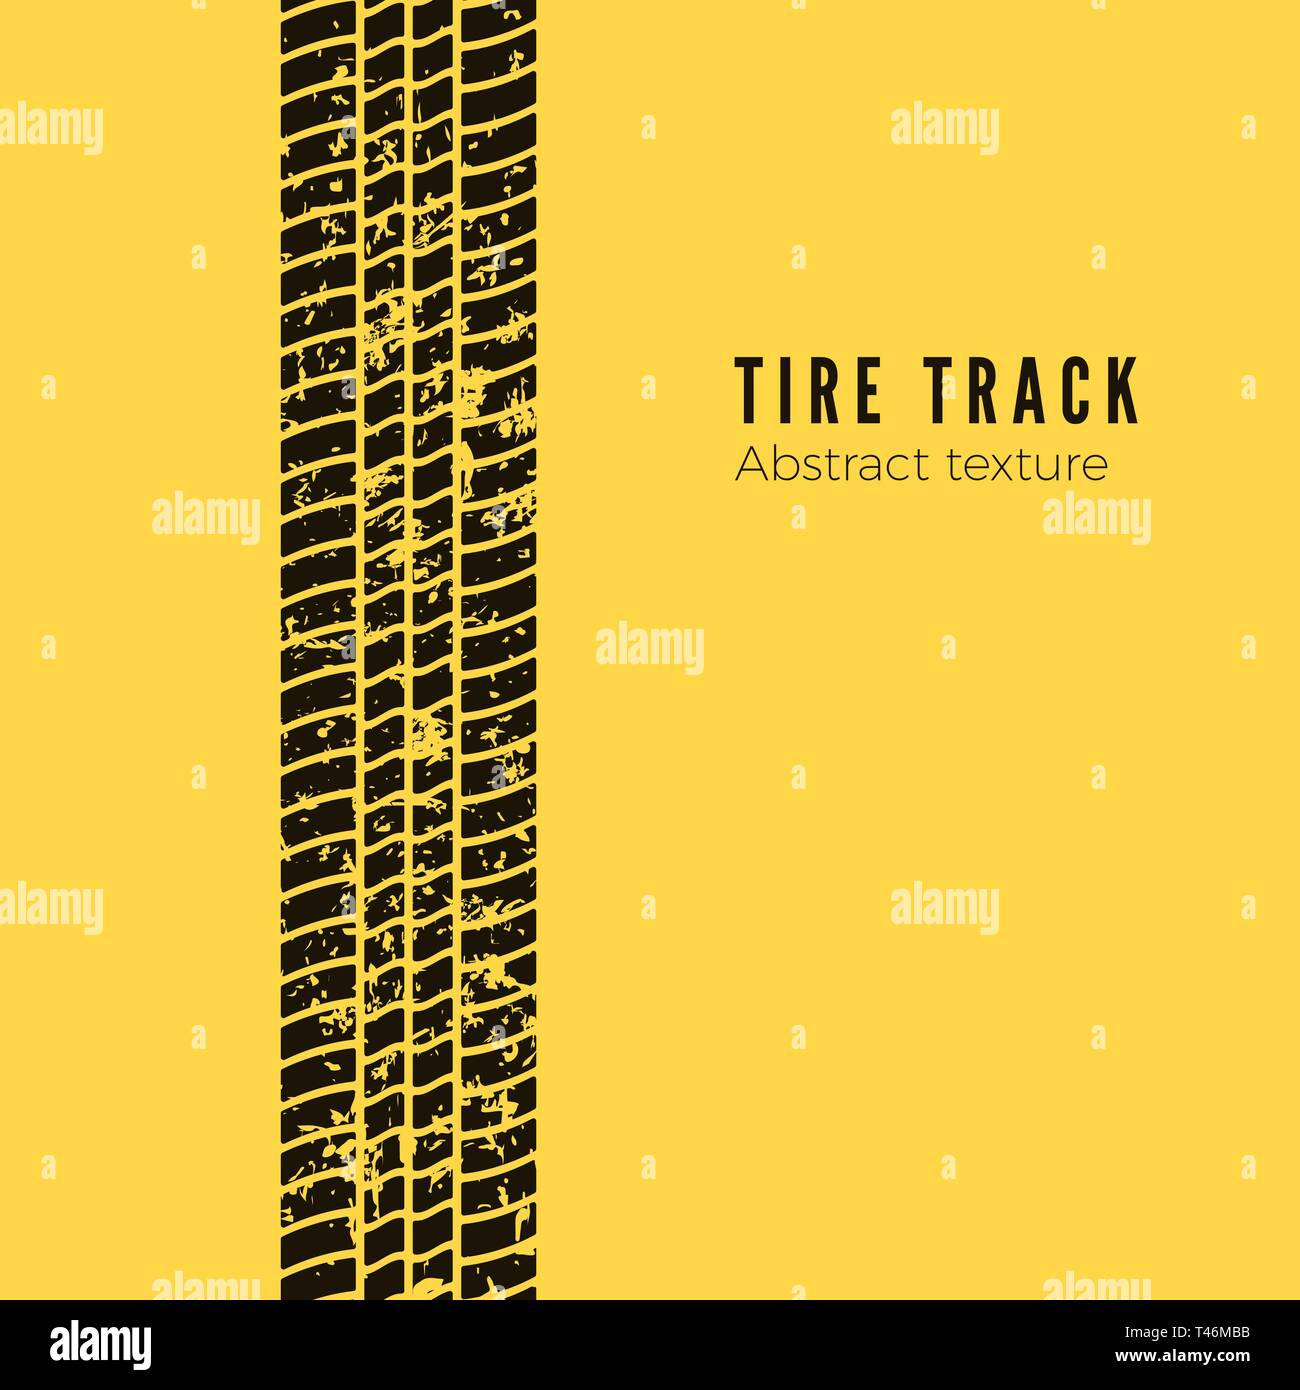 Dirt track from the car wheel protector. Tire track silhouette. Black tire track. Vector illustration isolated on yellow background - Stock Vector